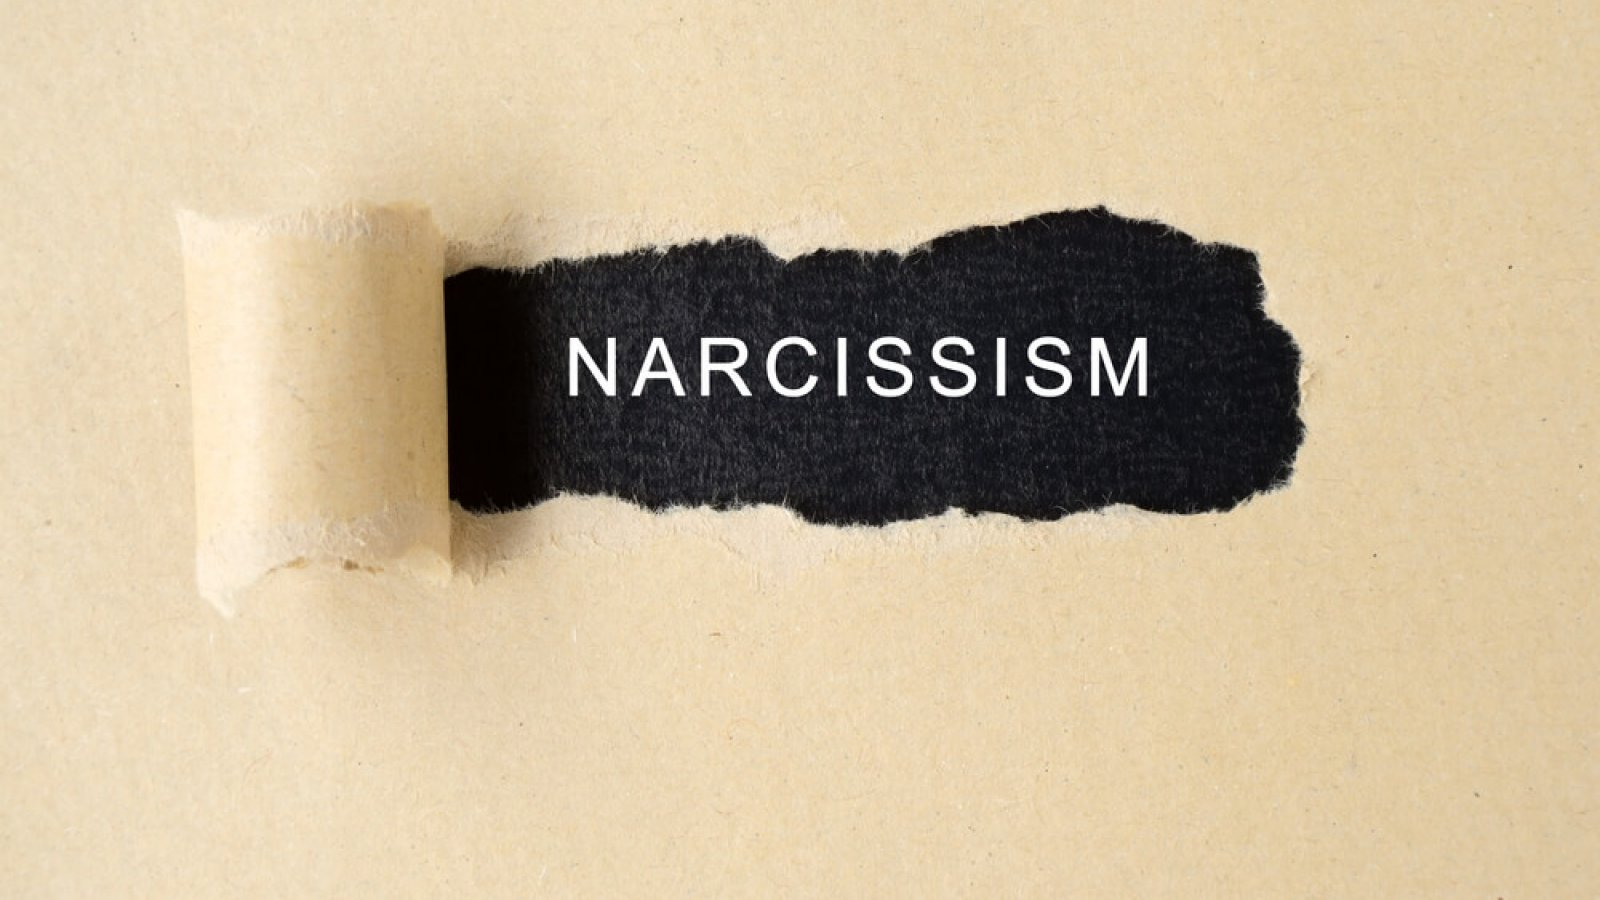 The word narcissism beneath a torn piece of paper